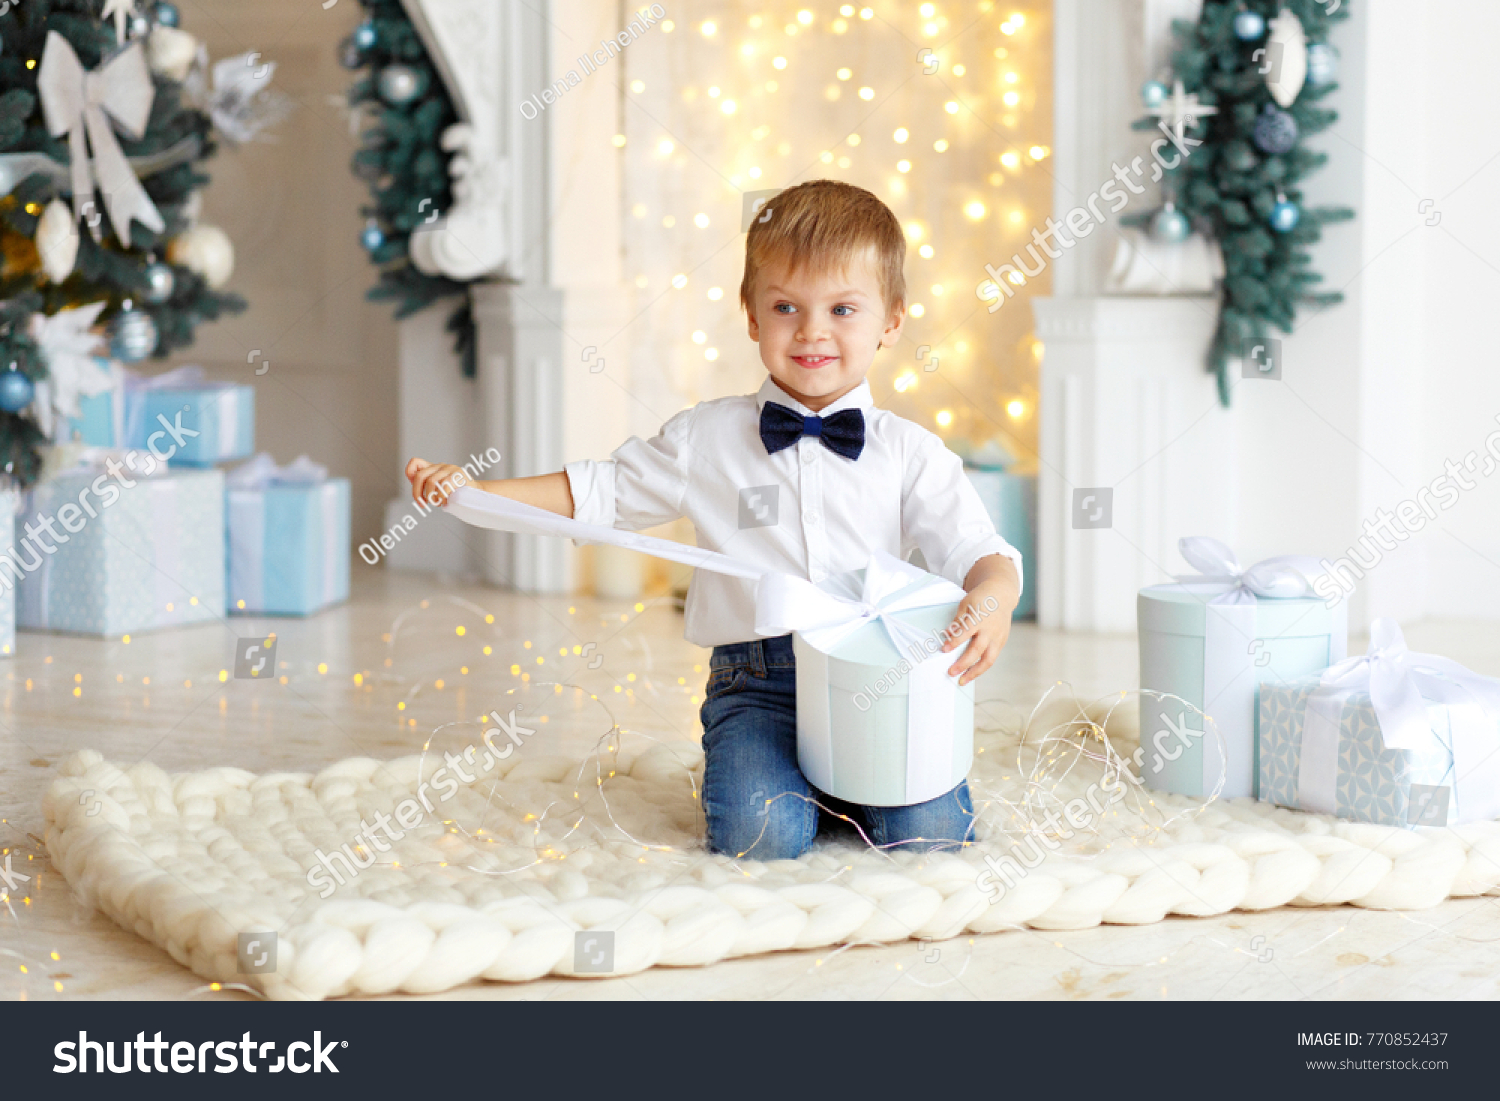 45 Year Old Boy Sits On Stock Photo (Edit Now) 770852437 - Shutterstock